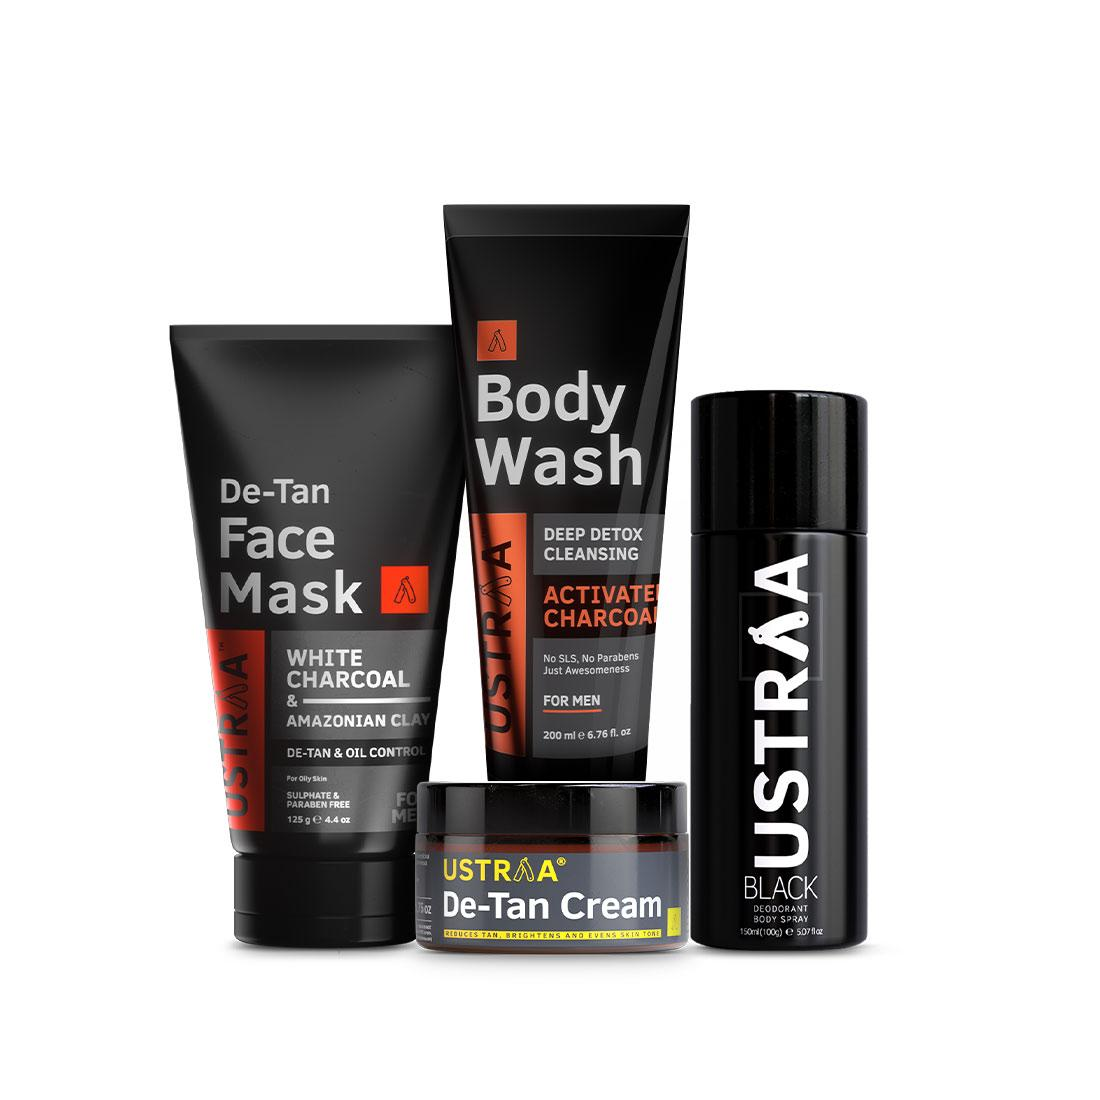 Ustraa 4-in-1 Monthly Essential Kit for Men | Deo Black, Body Wash Activated Charcoal, Face Mask Oily Skin & De-Tan Cream